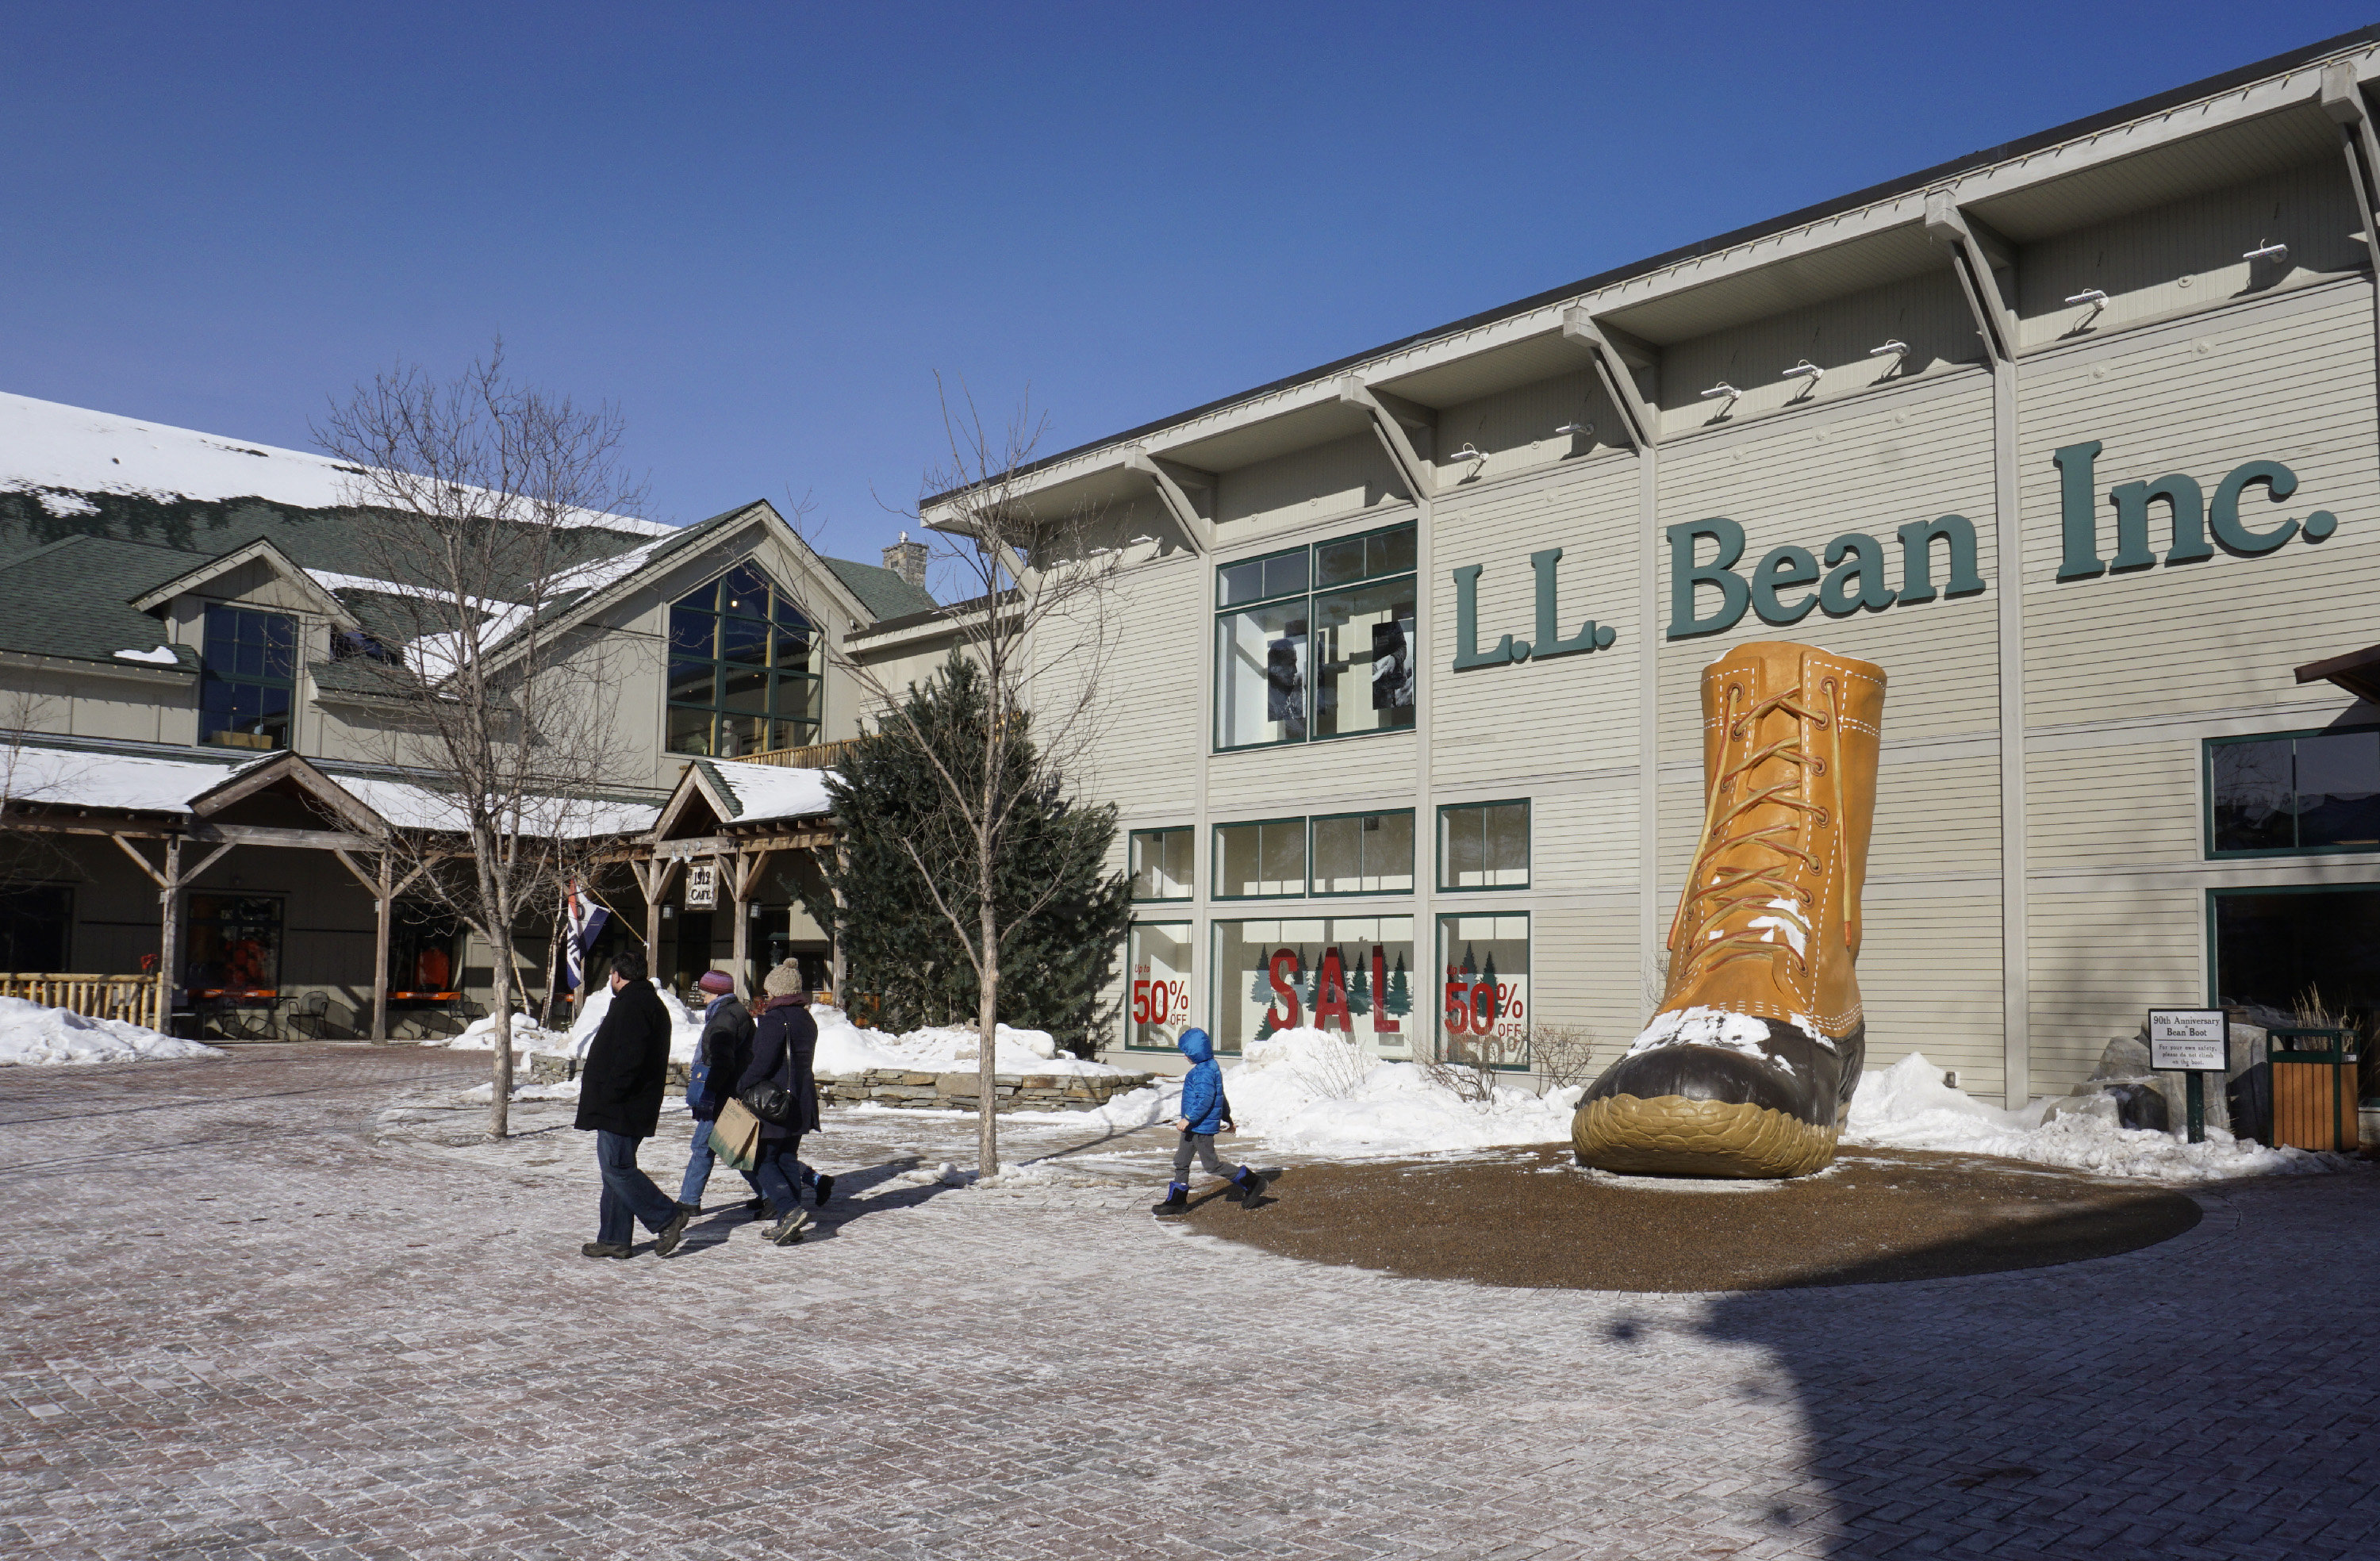 L.L. Bean flagship store in Maine with giant Bean boot outside